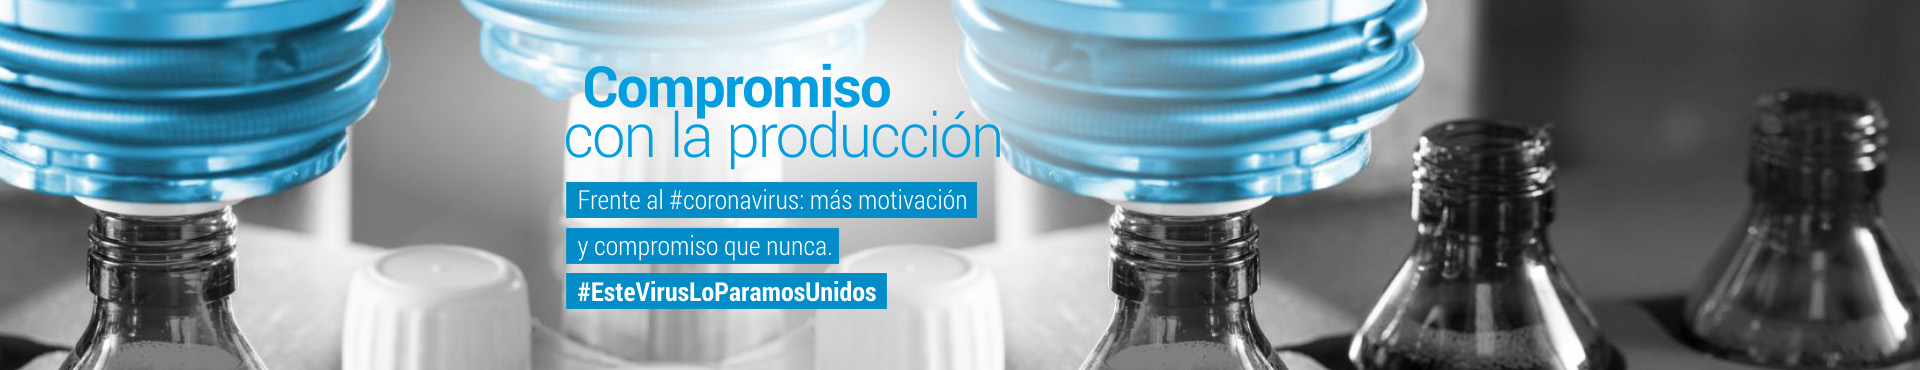 banner-canales-compromiso-prod-coronavirus